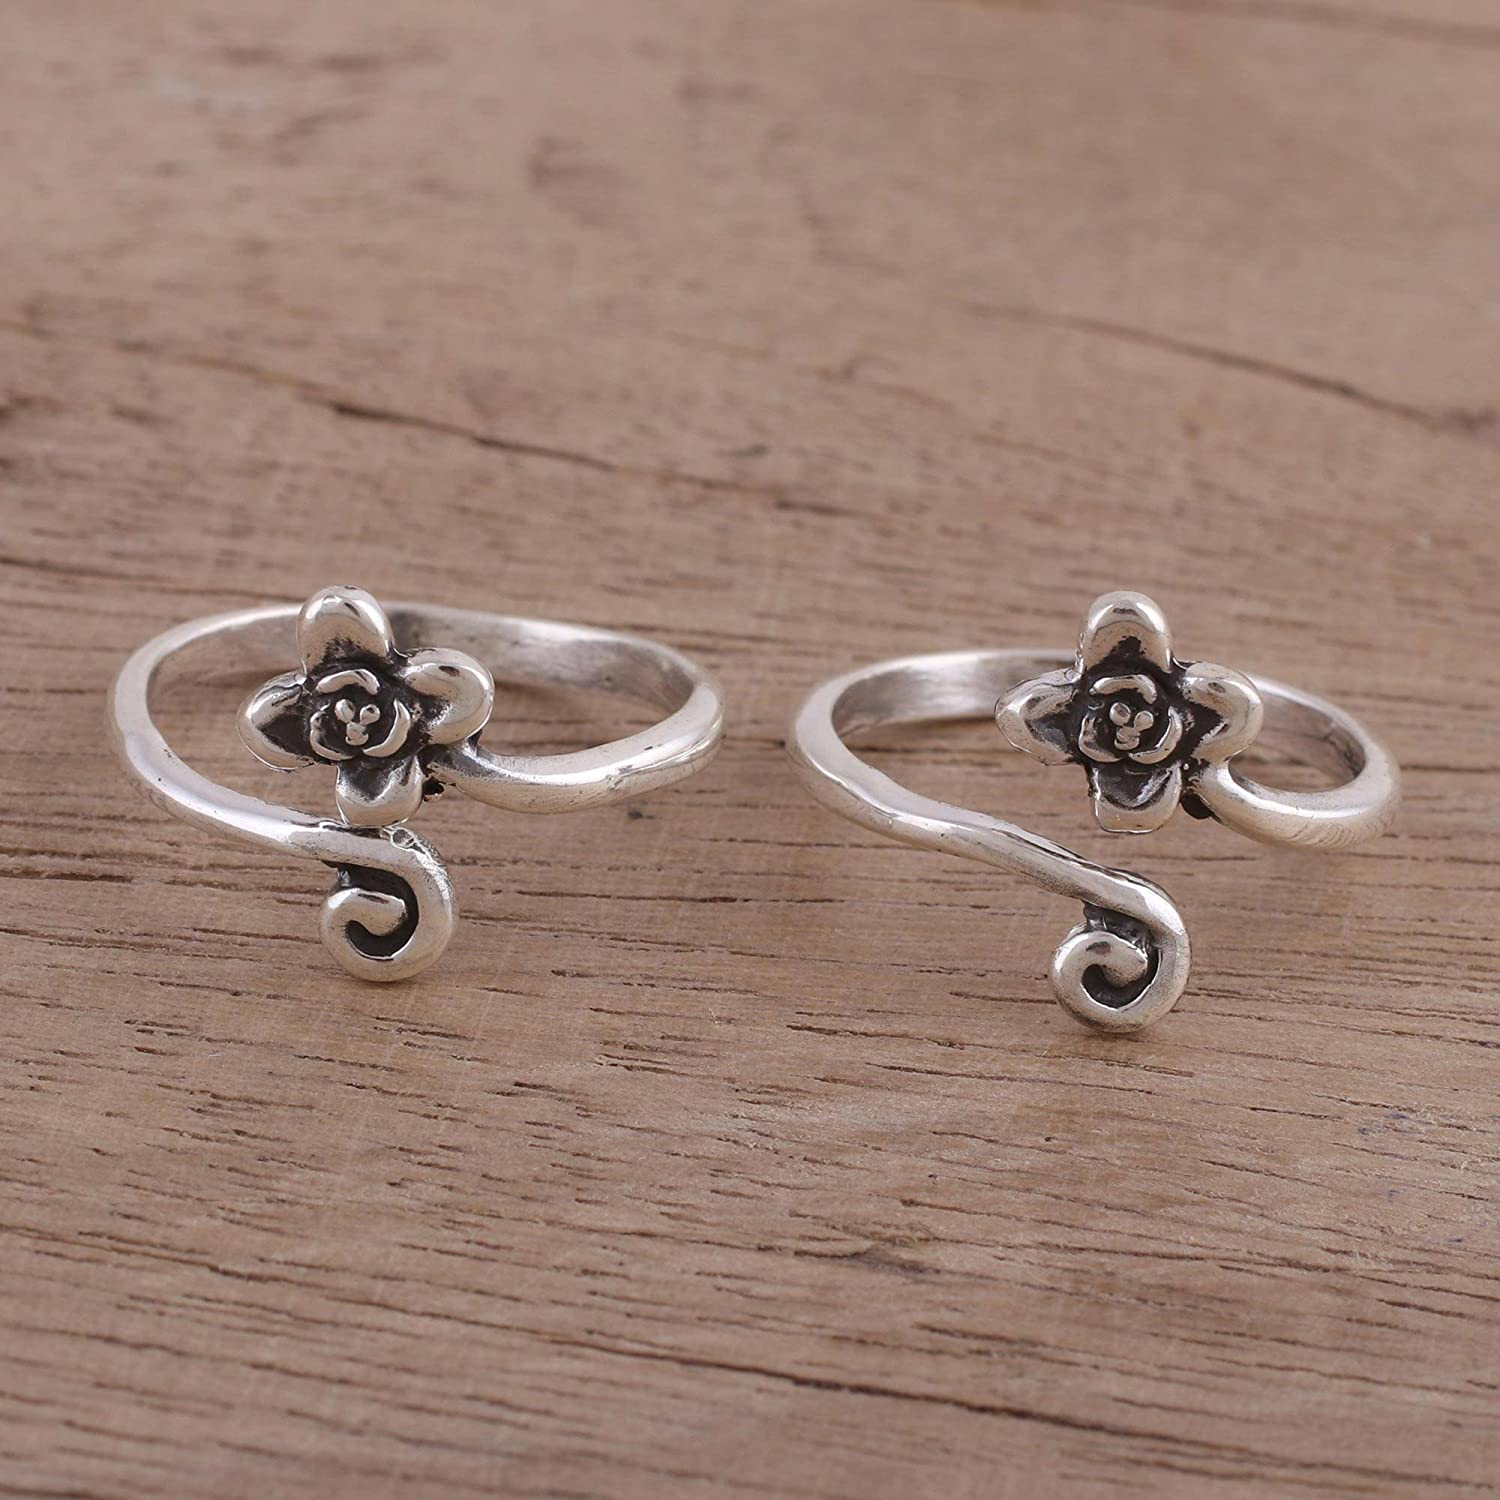 pair Flower and Swirl/' Flower and Swirl NOVICA .925 Sterling Silver Set of 2 Adjustable Floral Toe Rings pair